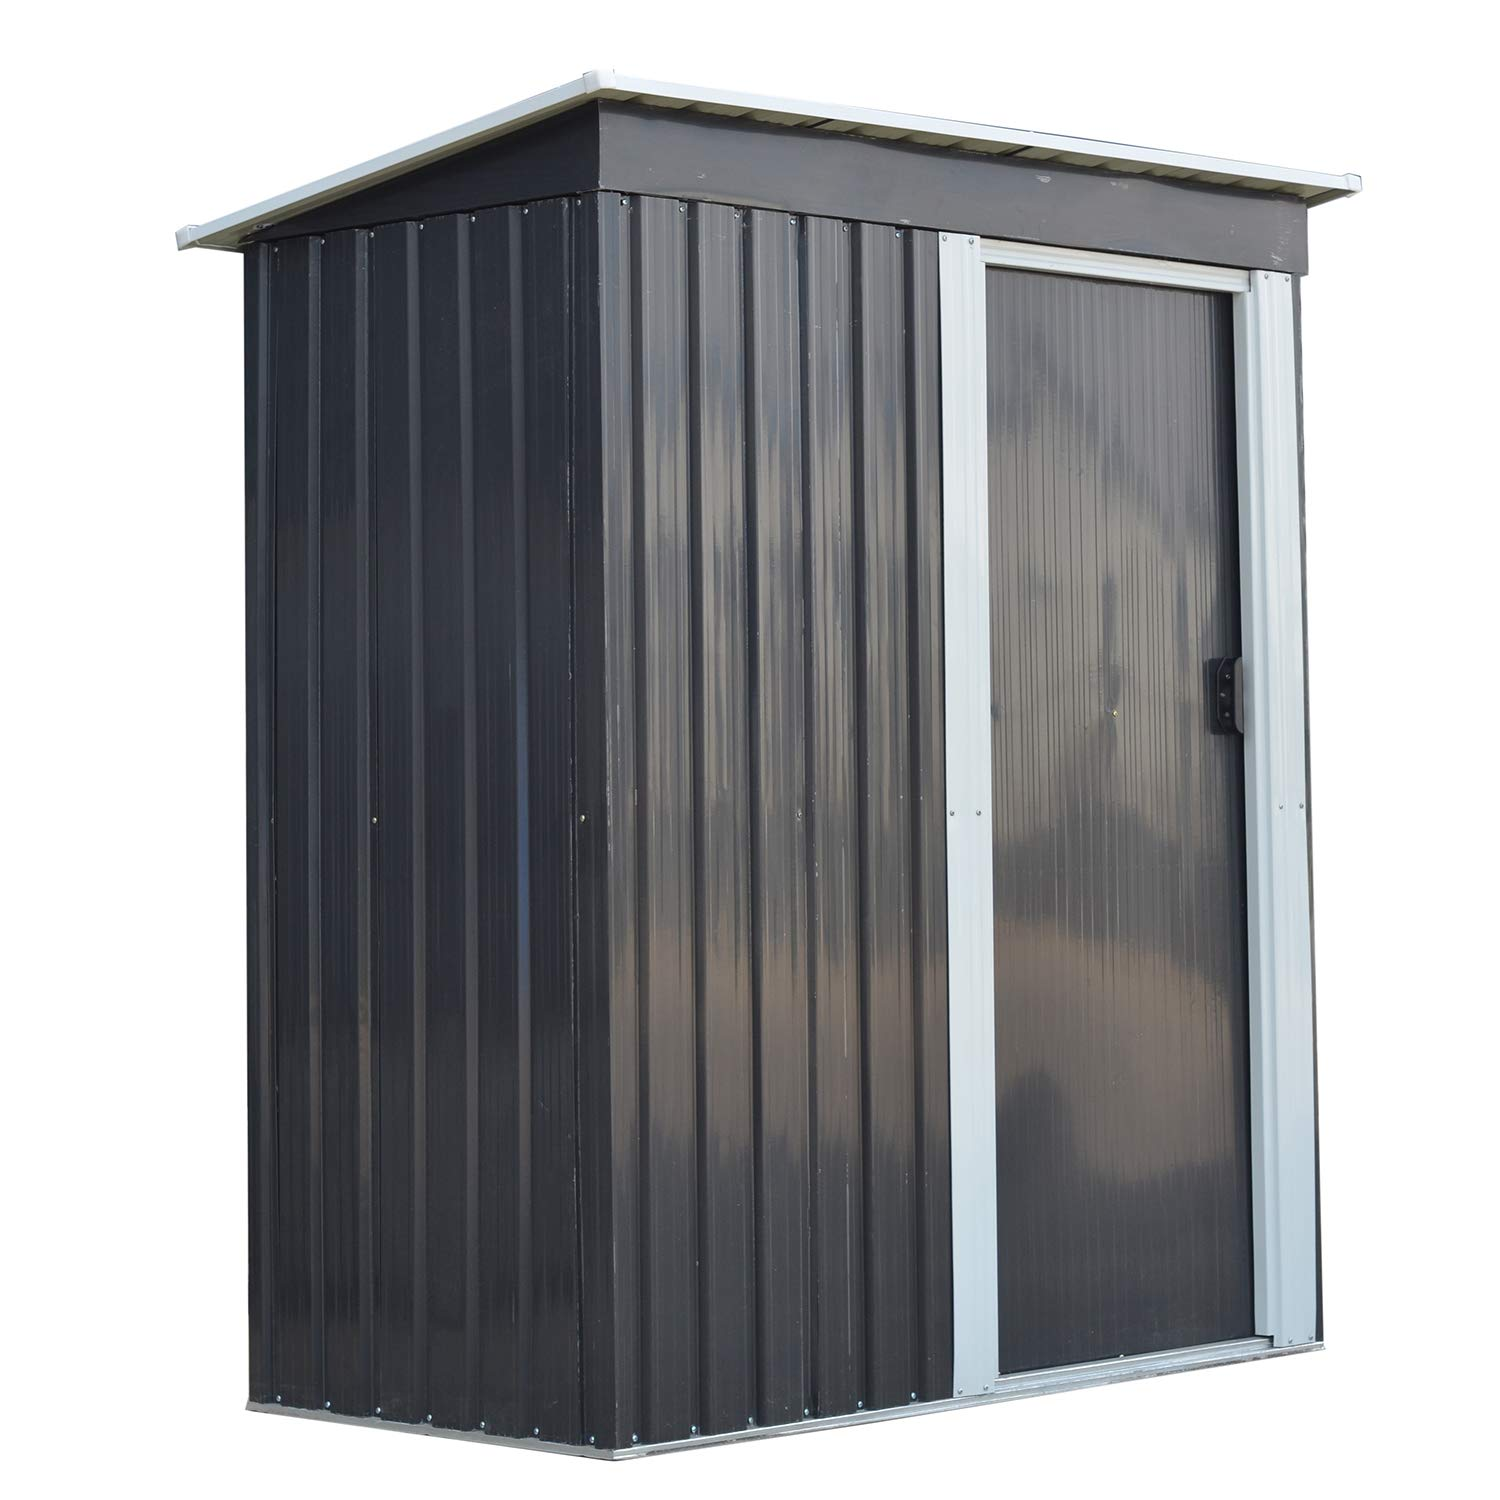 Ainfox Storage Shed, Lawn Garden Toolsheds Durable Paint Finish Steel Backyard Garden Black by Ainfox